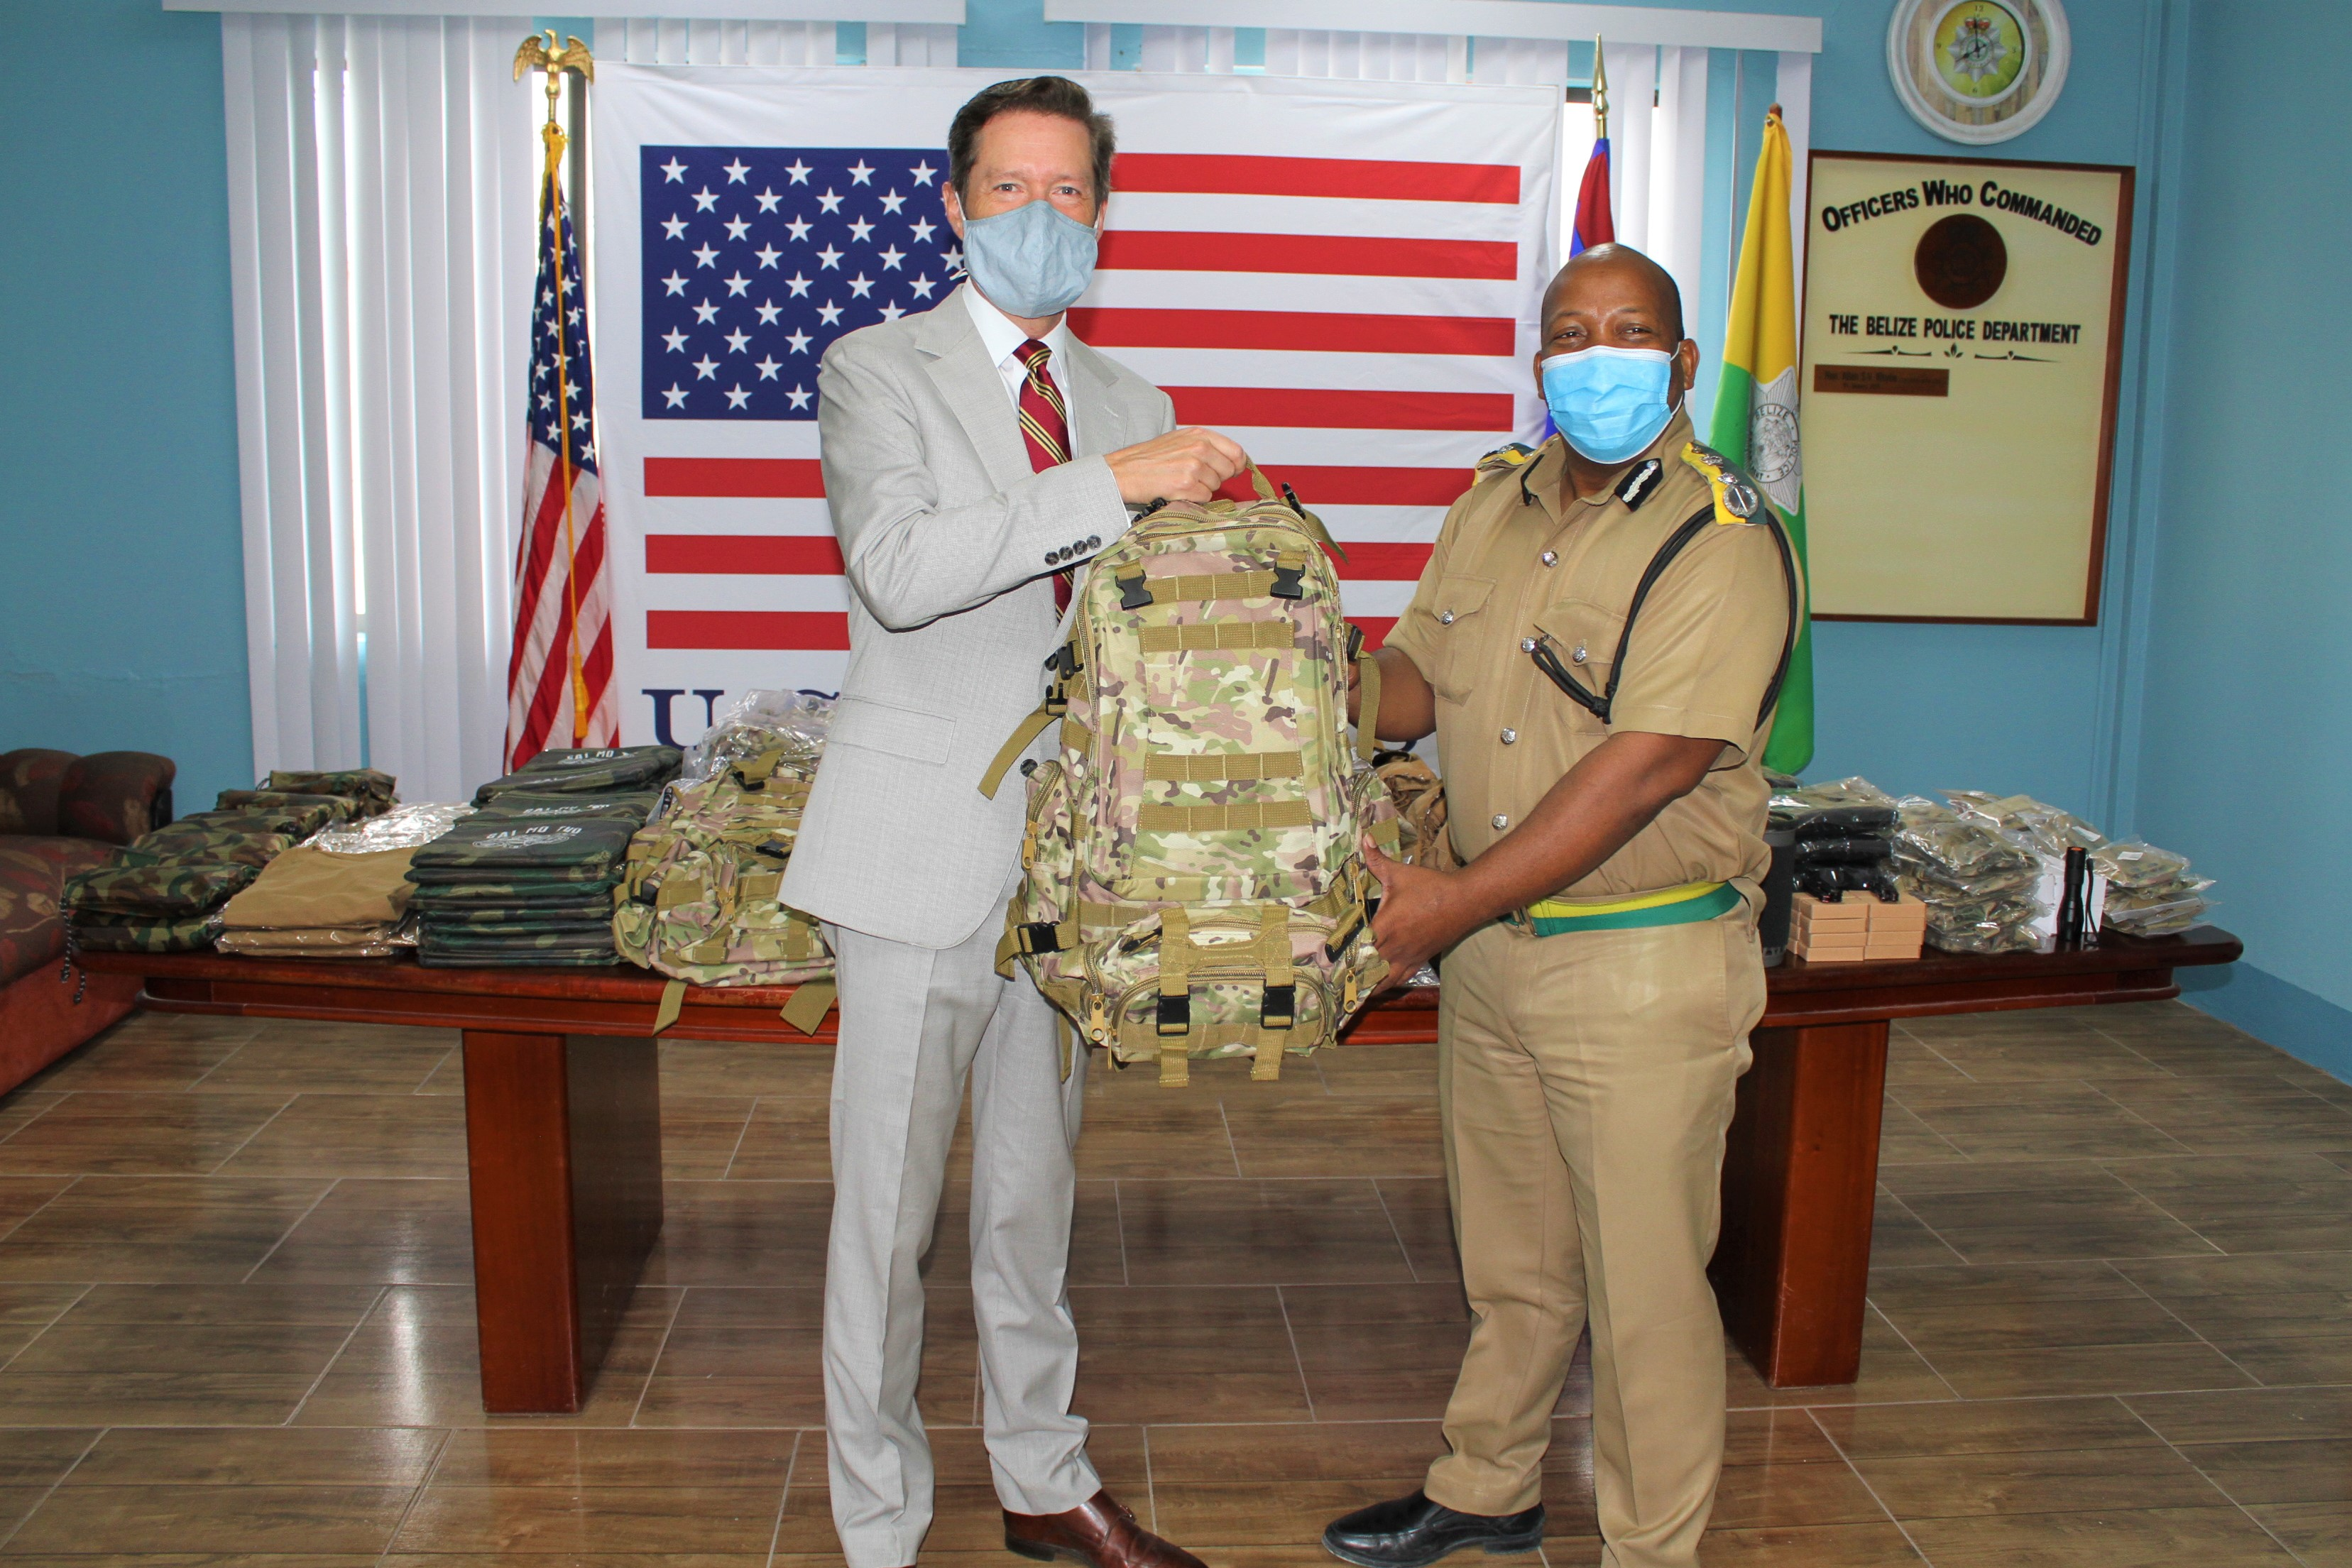 U.S. Embassy Delivers Tactical Equipment to the Belize Police Department